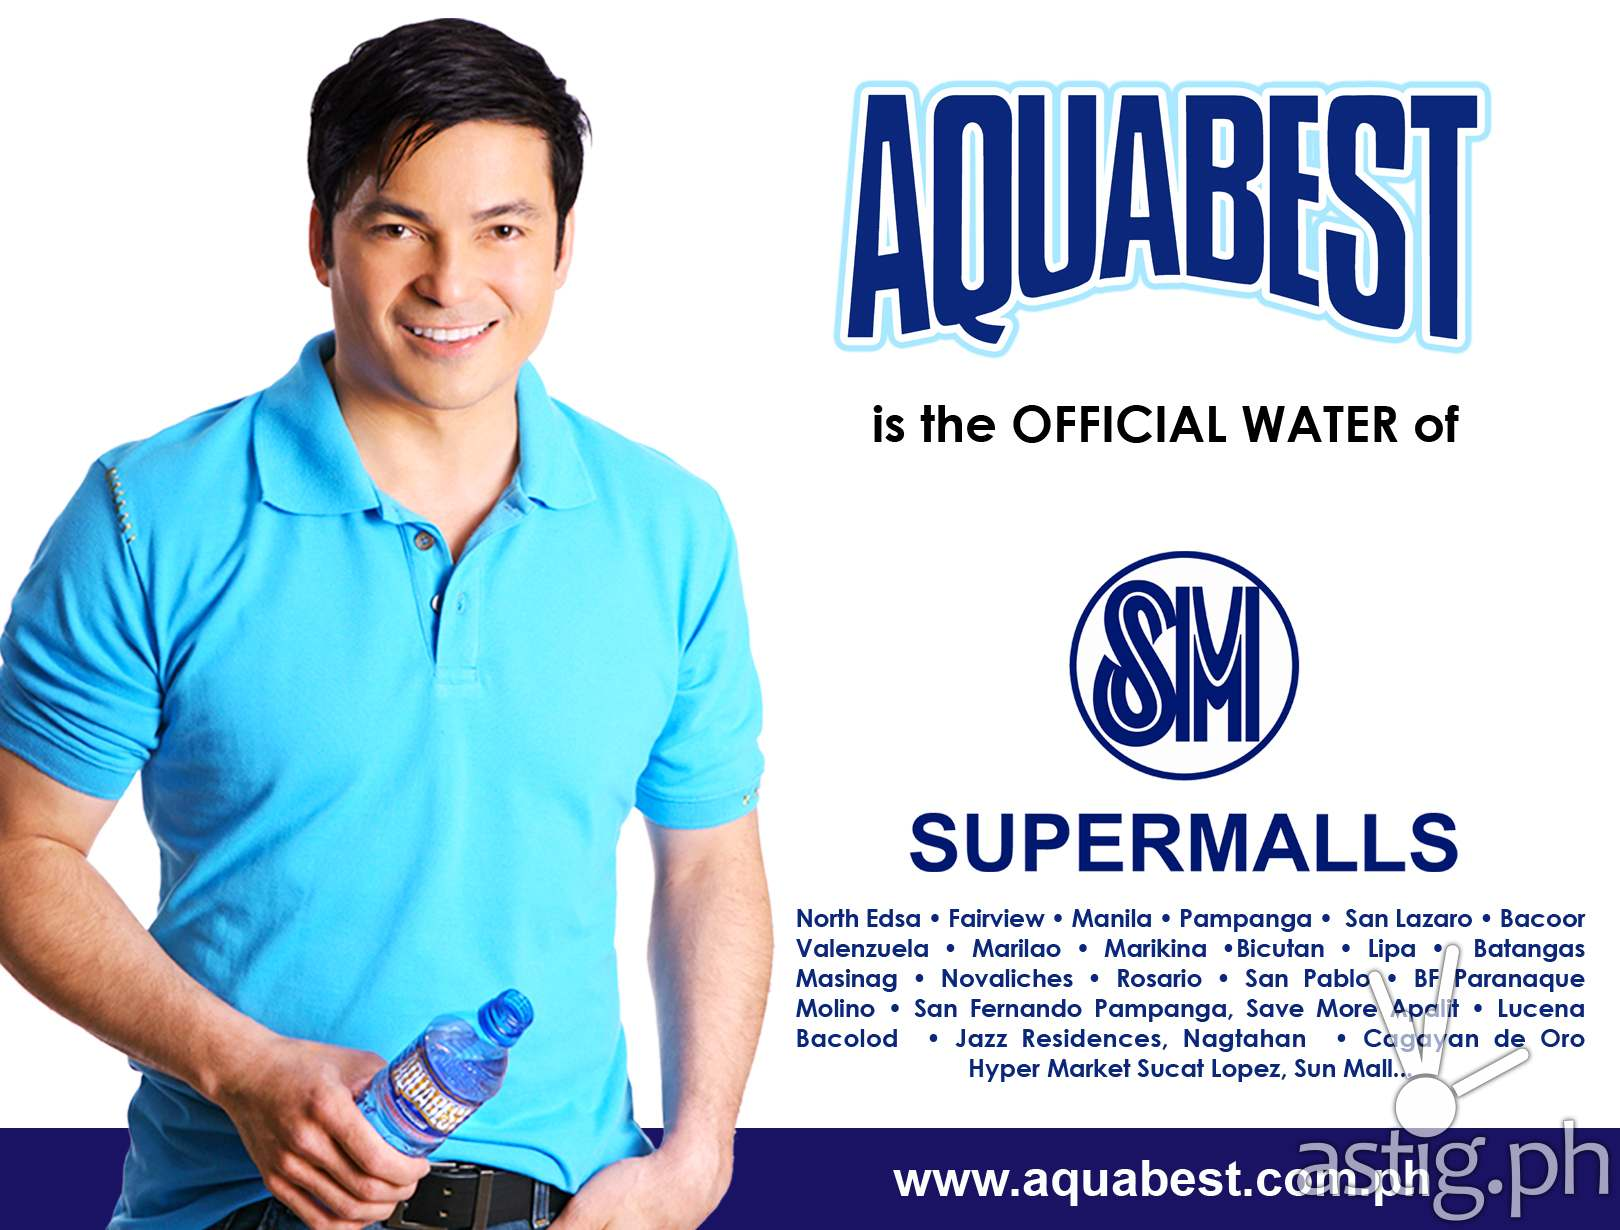 Aquabest SM Supermalls